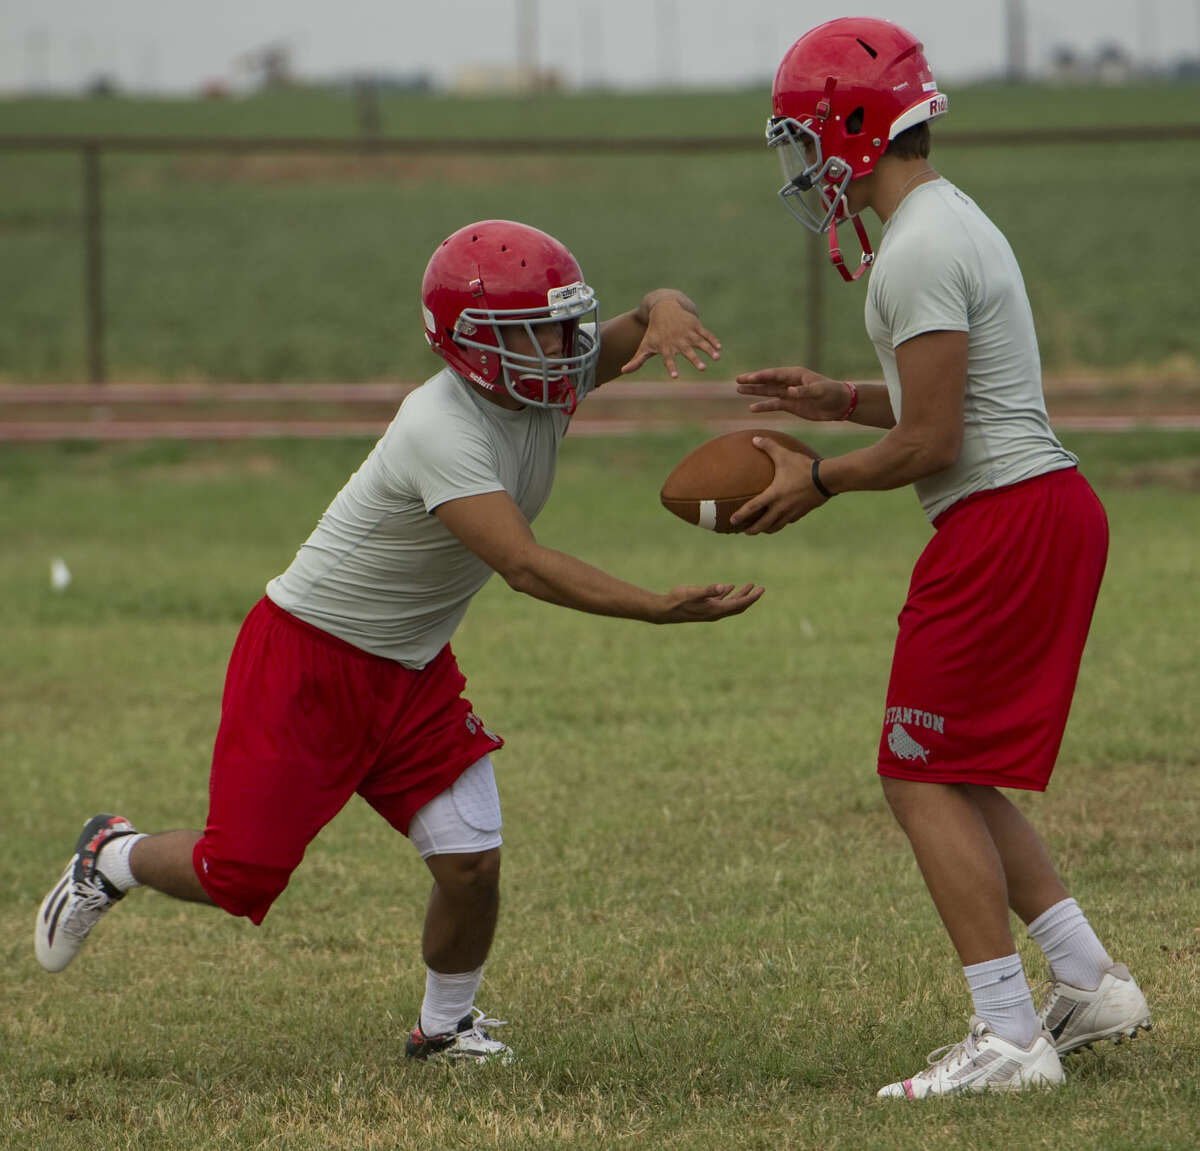 Stanton running back Estevan Chavez takes a handoff from Tristan Graves as they and other players run drills Tuesday 8-4-15, during the first week of football practice. Tim Fischer\Reporter-Telegram